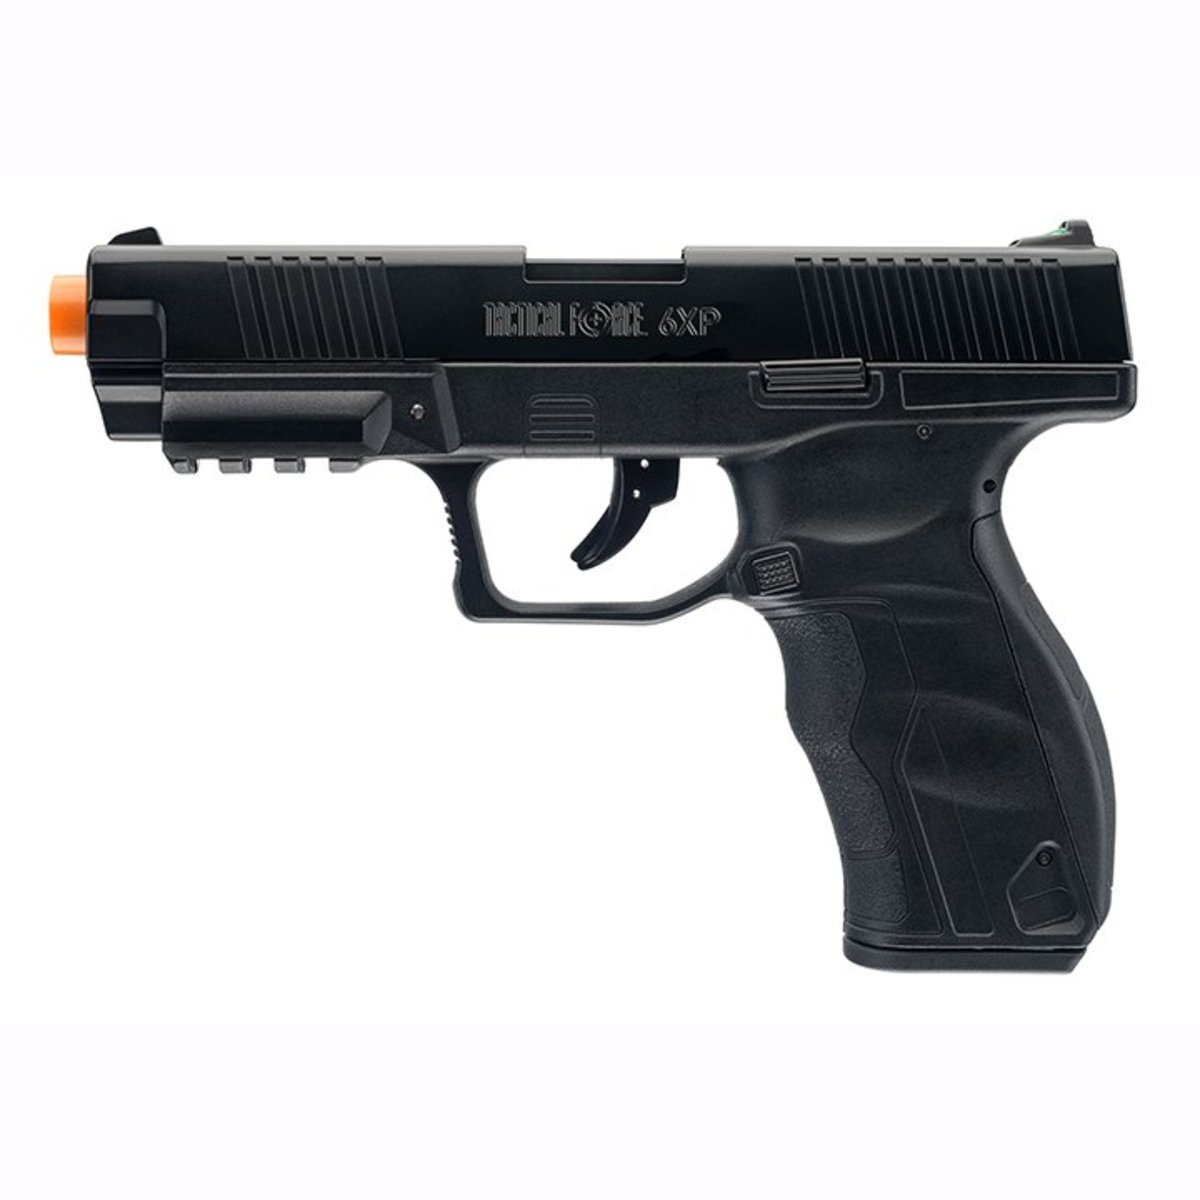 View larger image of Tactical Force 6XP CO2 Blowback Airsoft Pistol